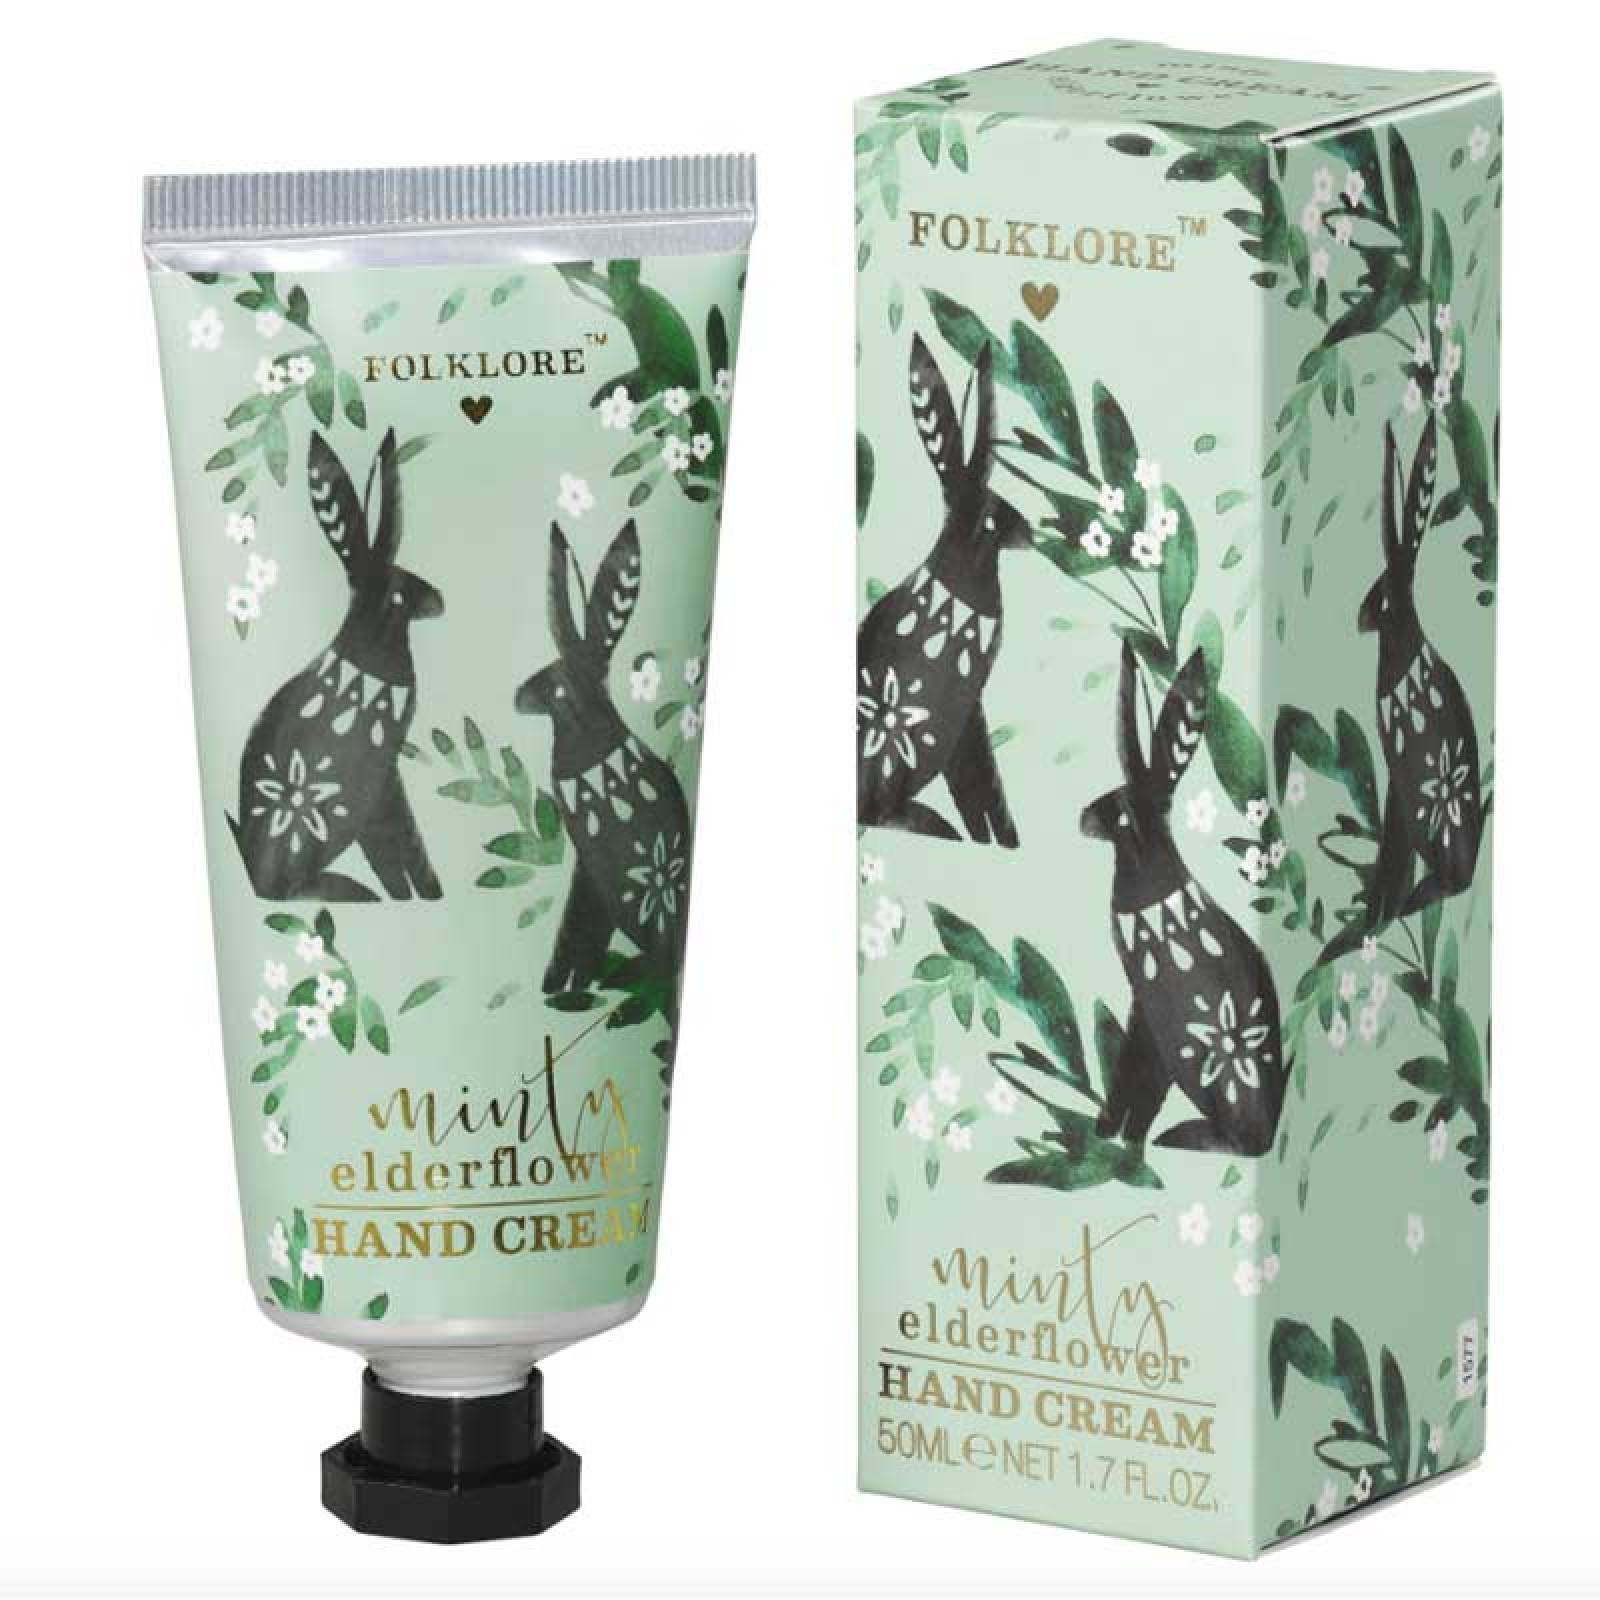 Folklore Rabbit Handcream Minty Elderflower thumbnails